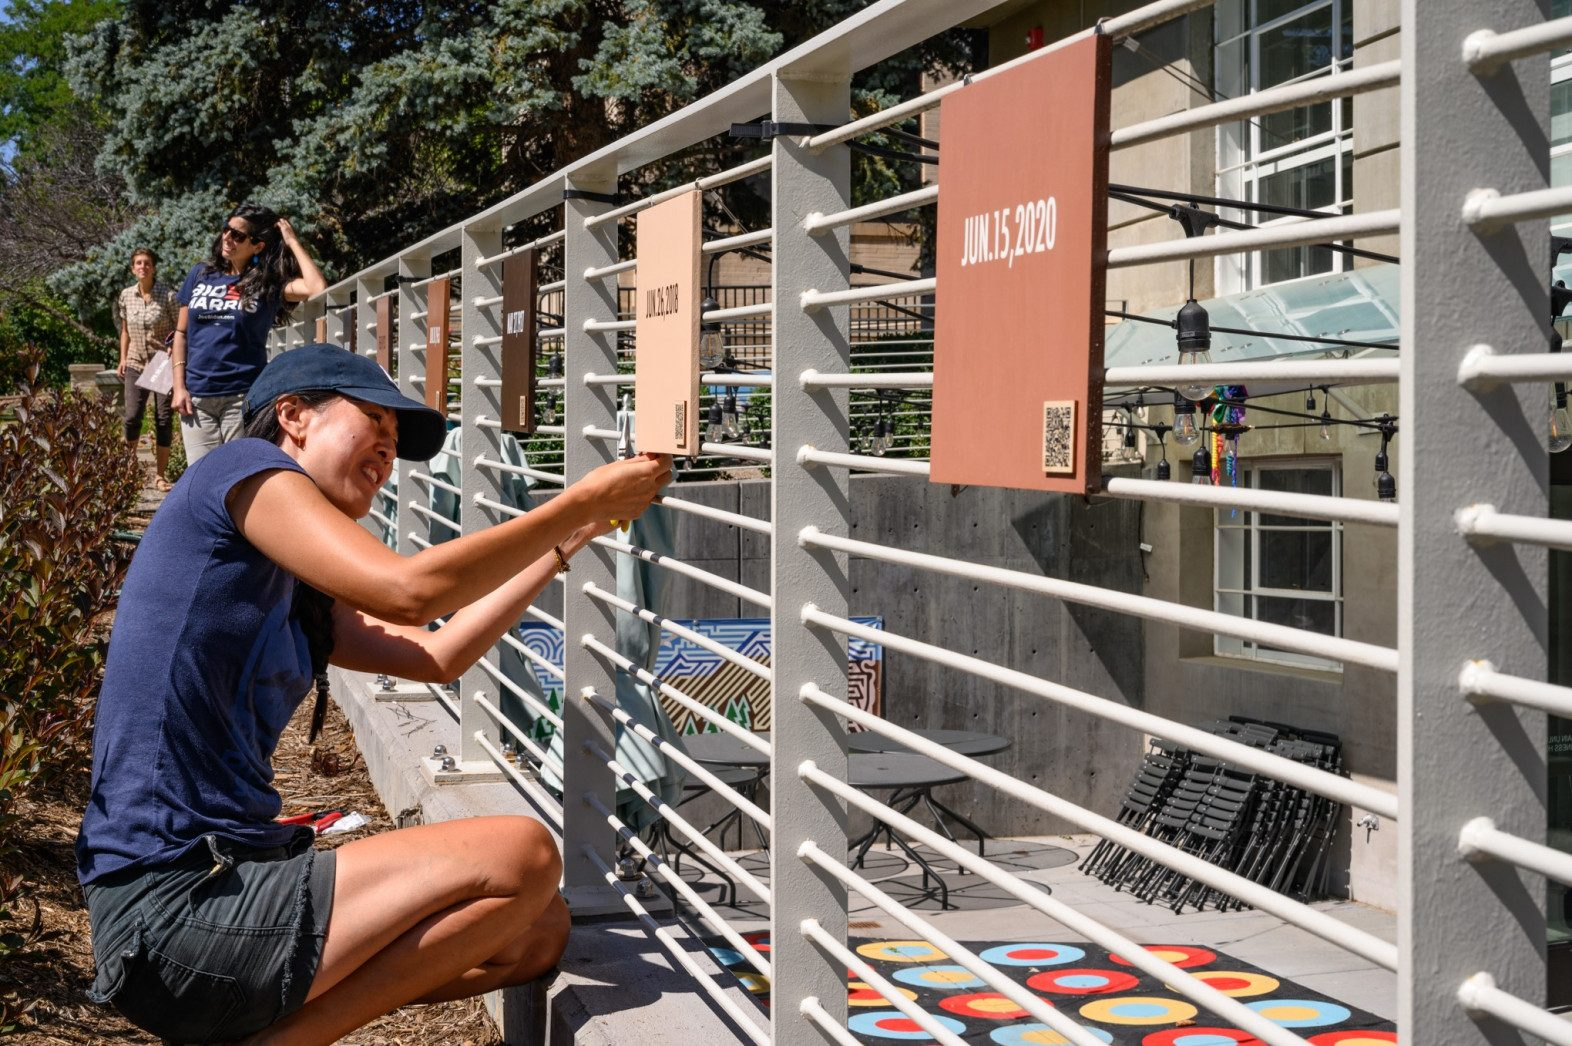 """Artist Angie Eng installs plaques from her outdoor exhibit """"Right on!"""" on the railing outside of the Museum of Boulder, at 2205 Broadway, in Sept. 2020. (Don Murray/ Courtesy photo)"""